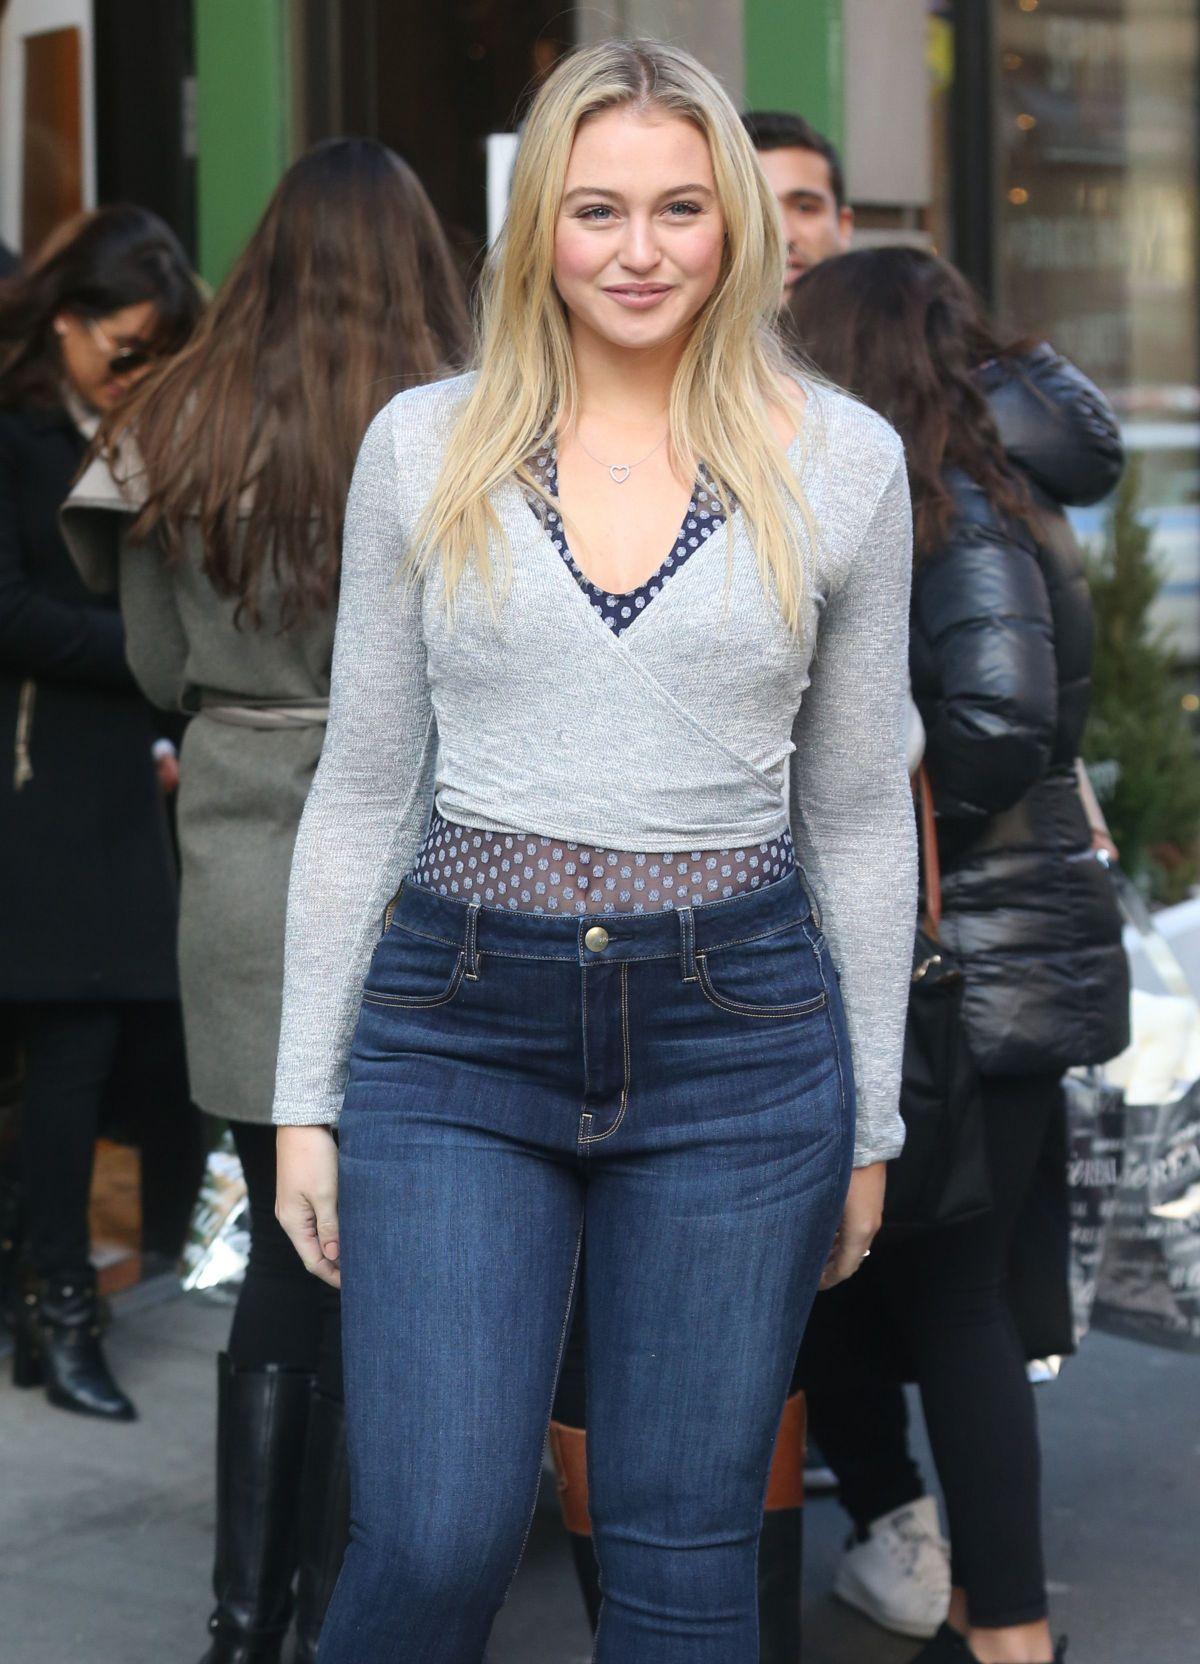 ISKRA LWRENCE at Aerie Popup Shop in New York 12/15/2016